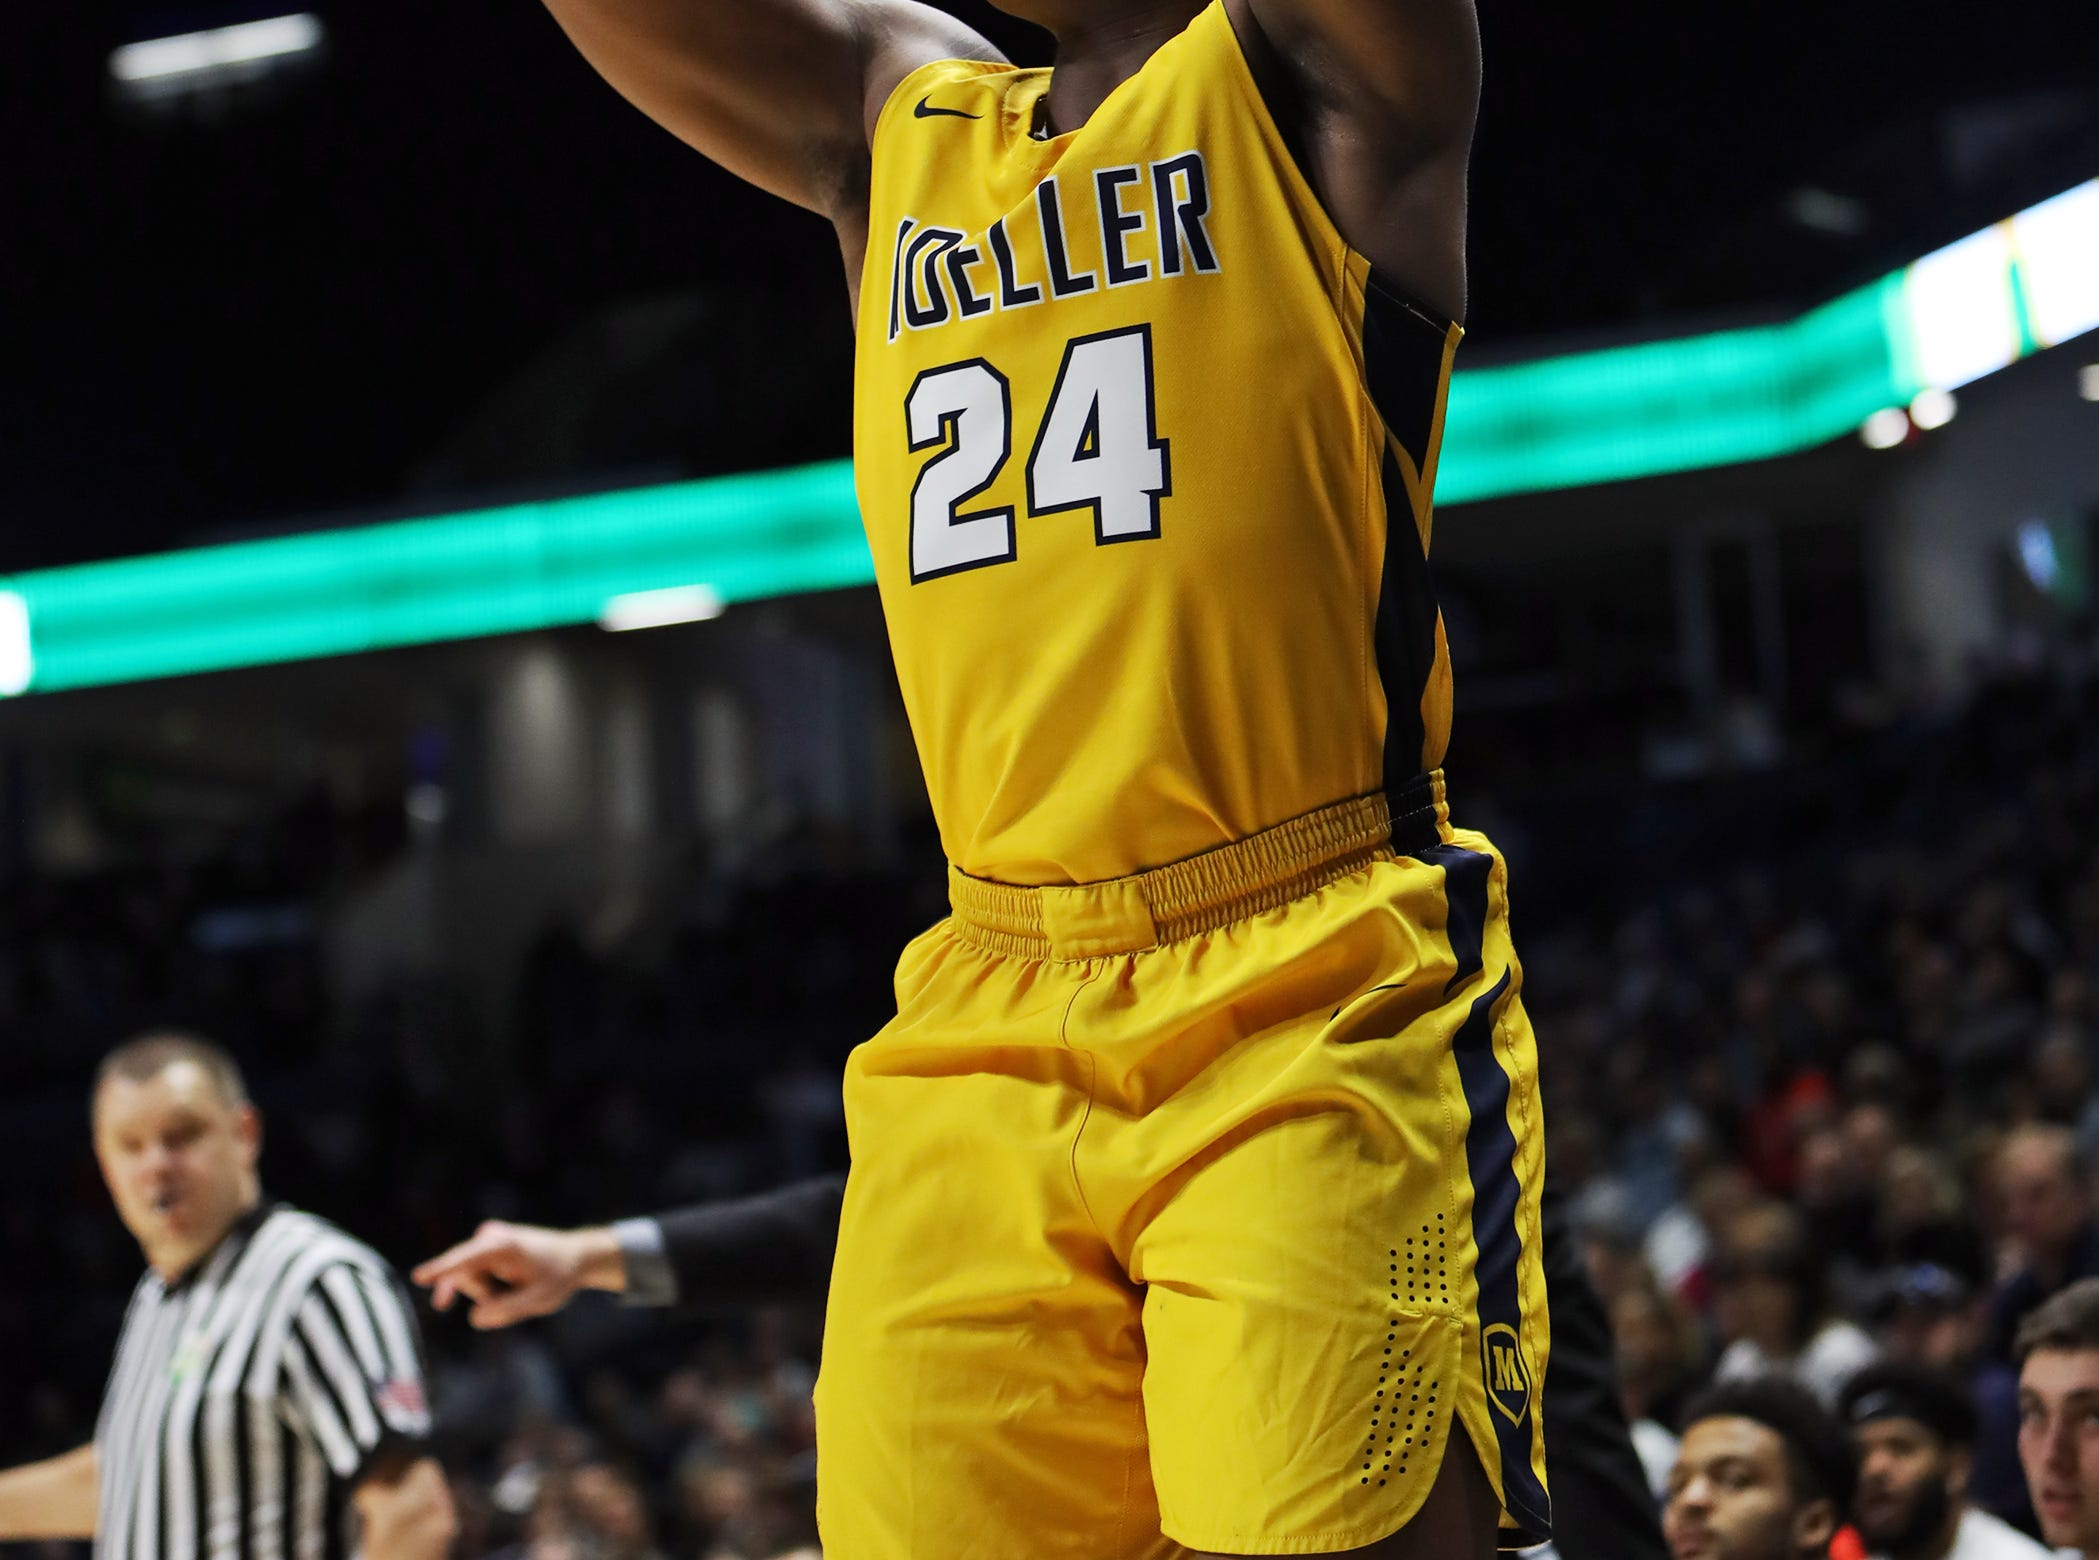 Moeller guard Alex Williams attempts a jump shot in the first half of the boys regional semifinal March 13, 2019, at Xavier University's Cintas Center. Moeller defeated Lakota East 47-33.